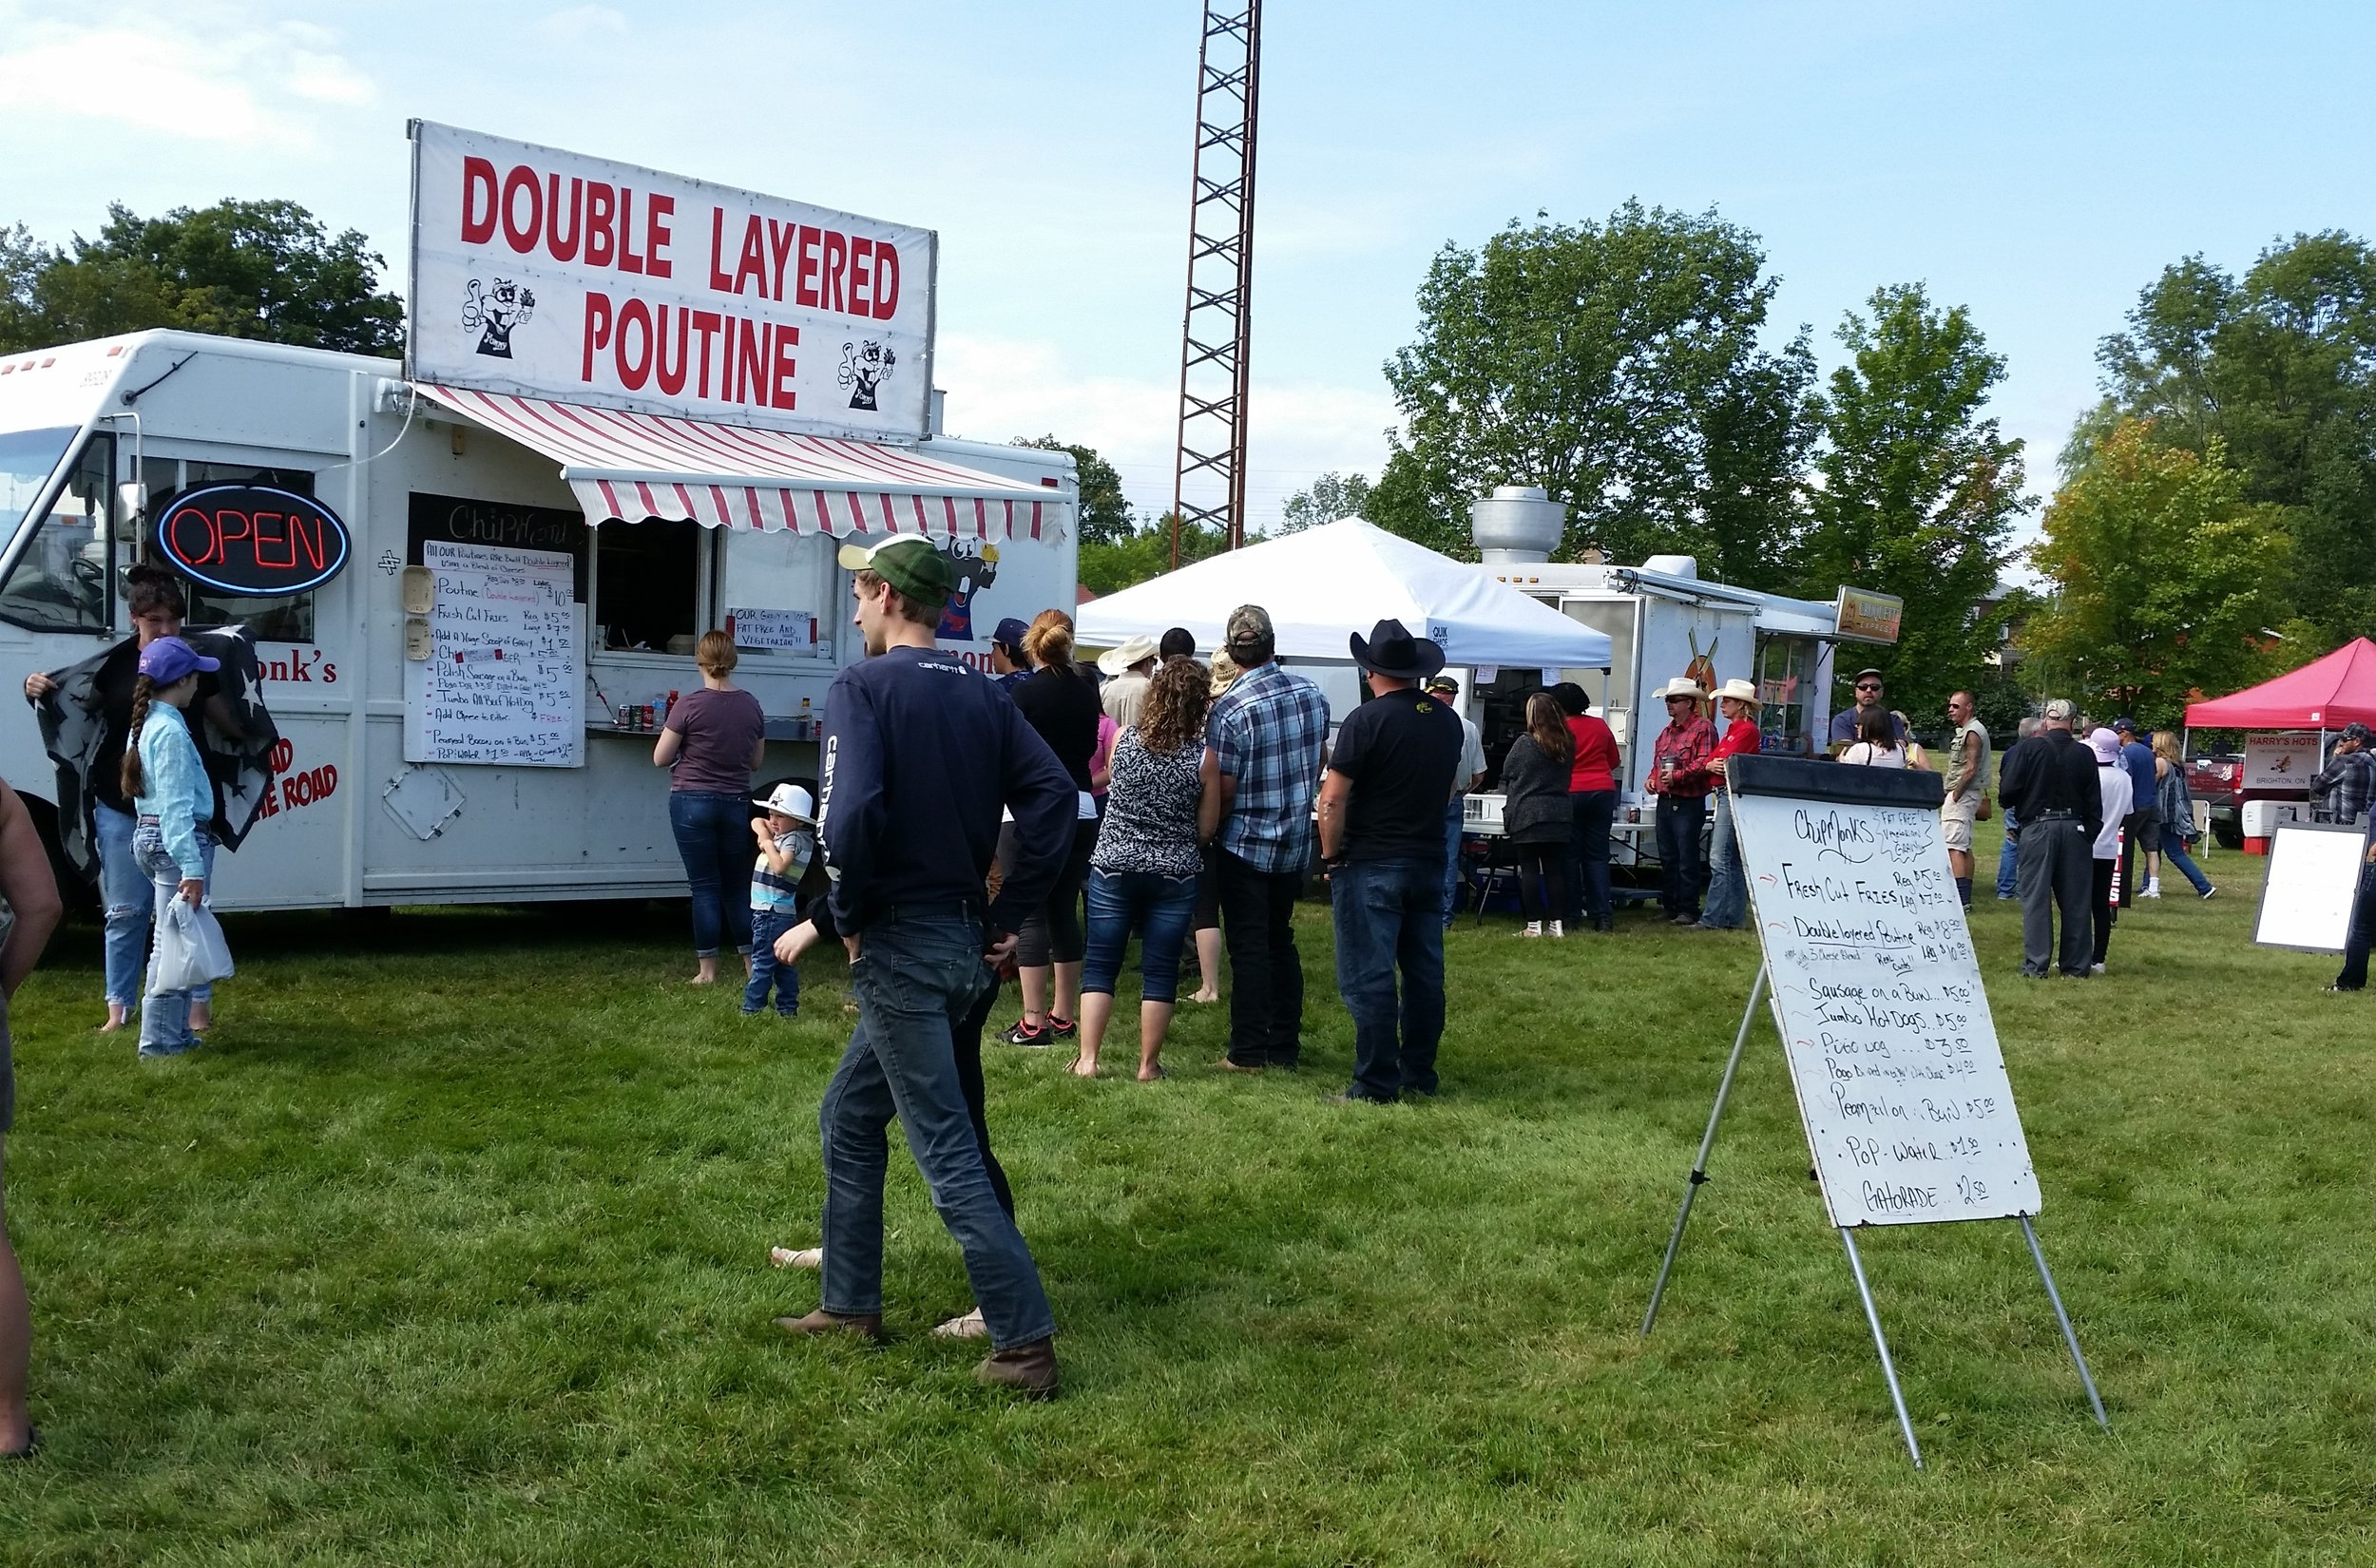 Some of the food and merchandise vendors at the fairgrounds.